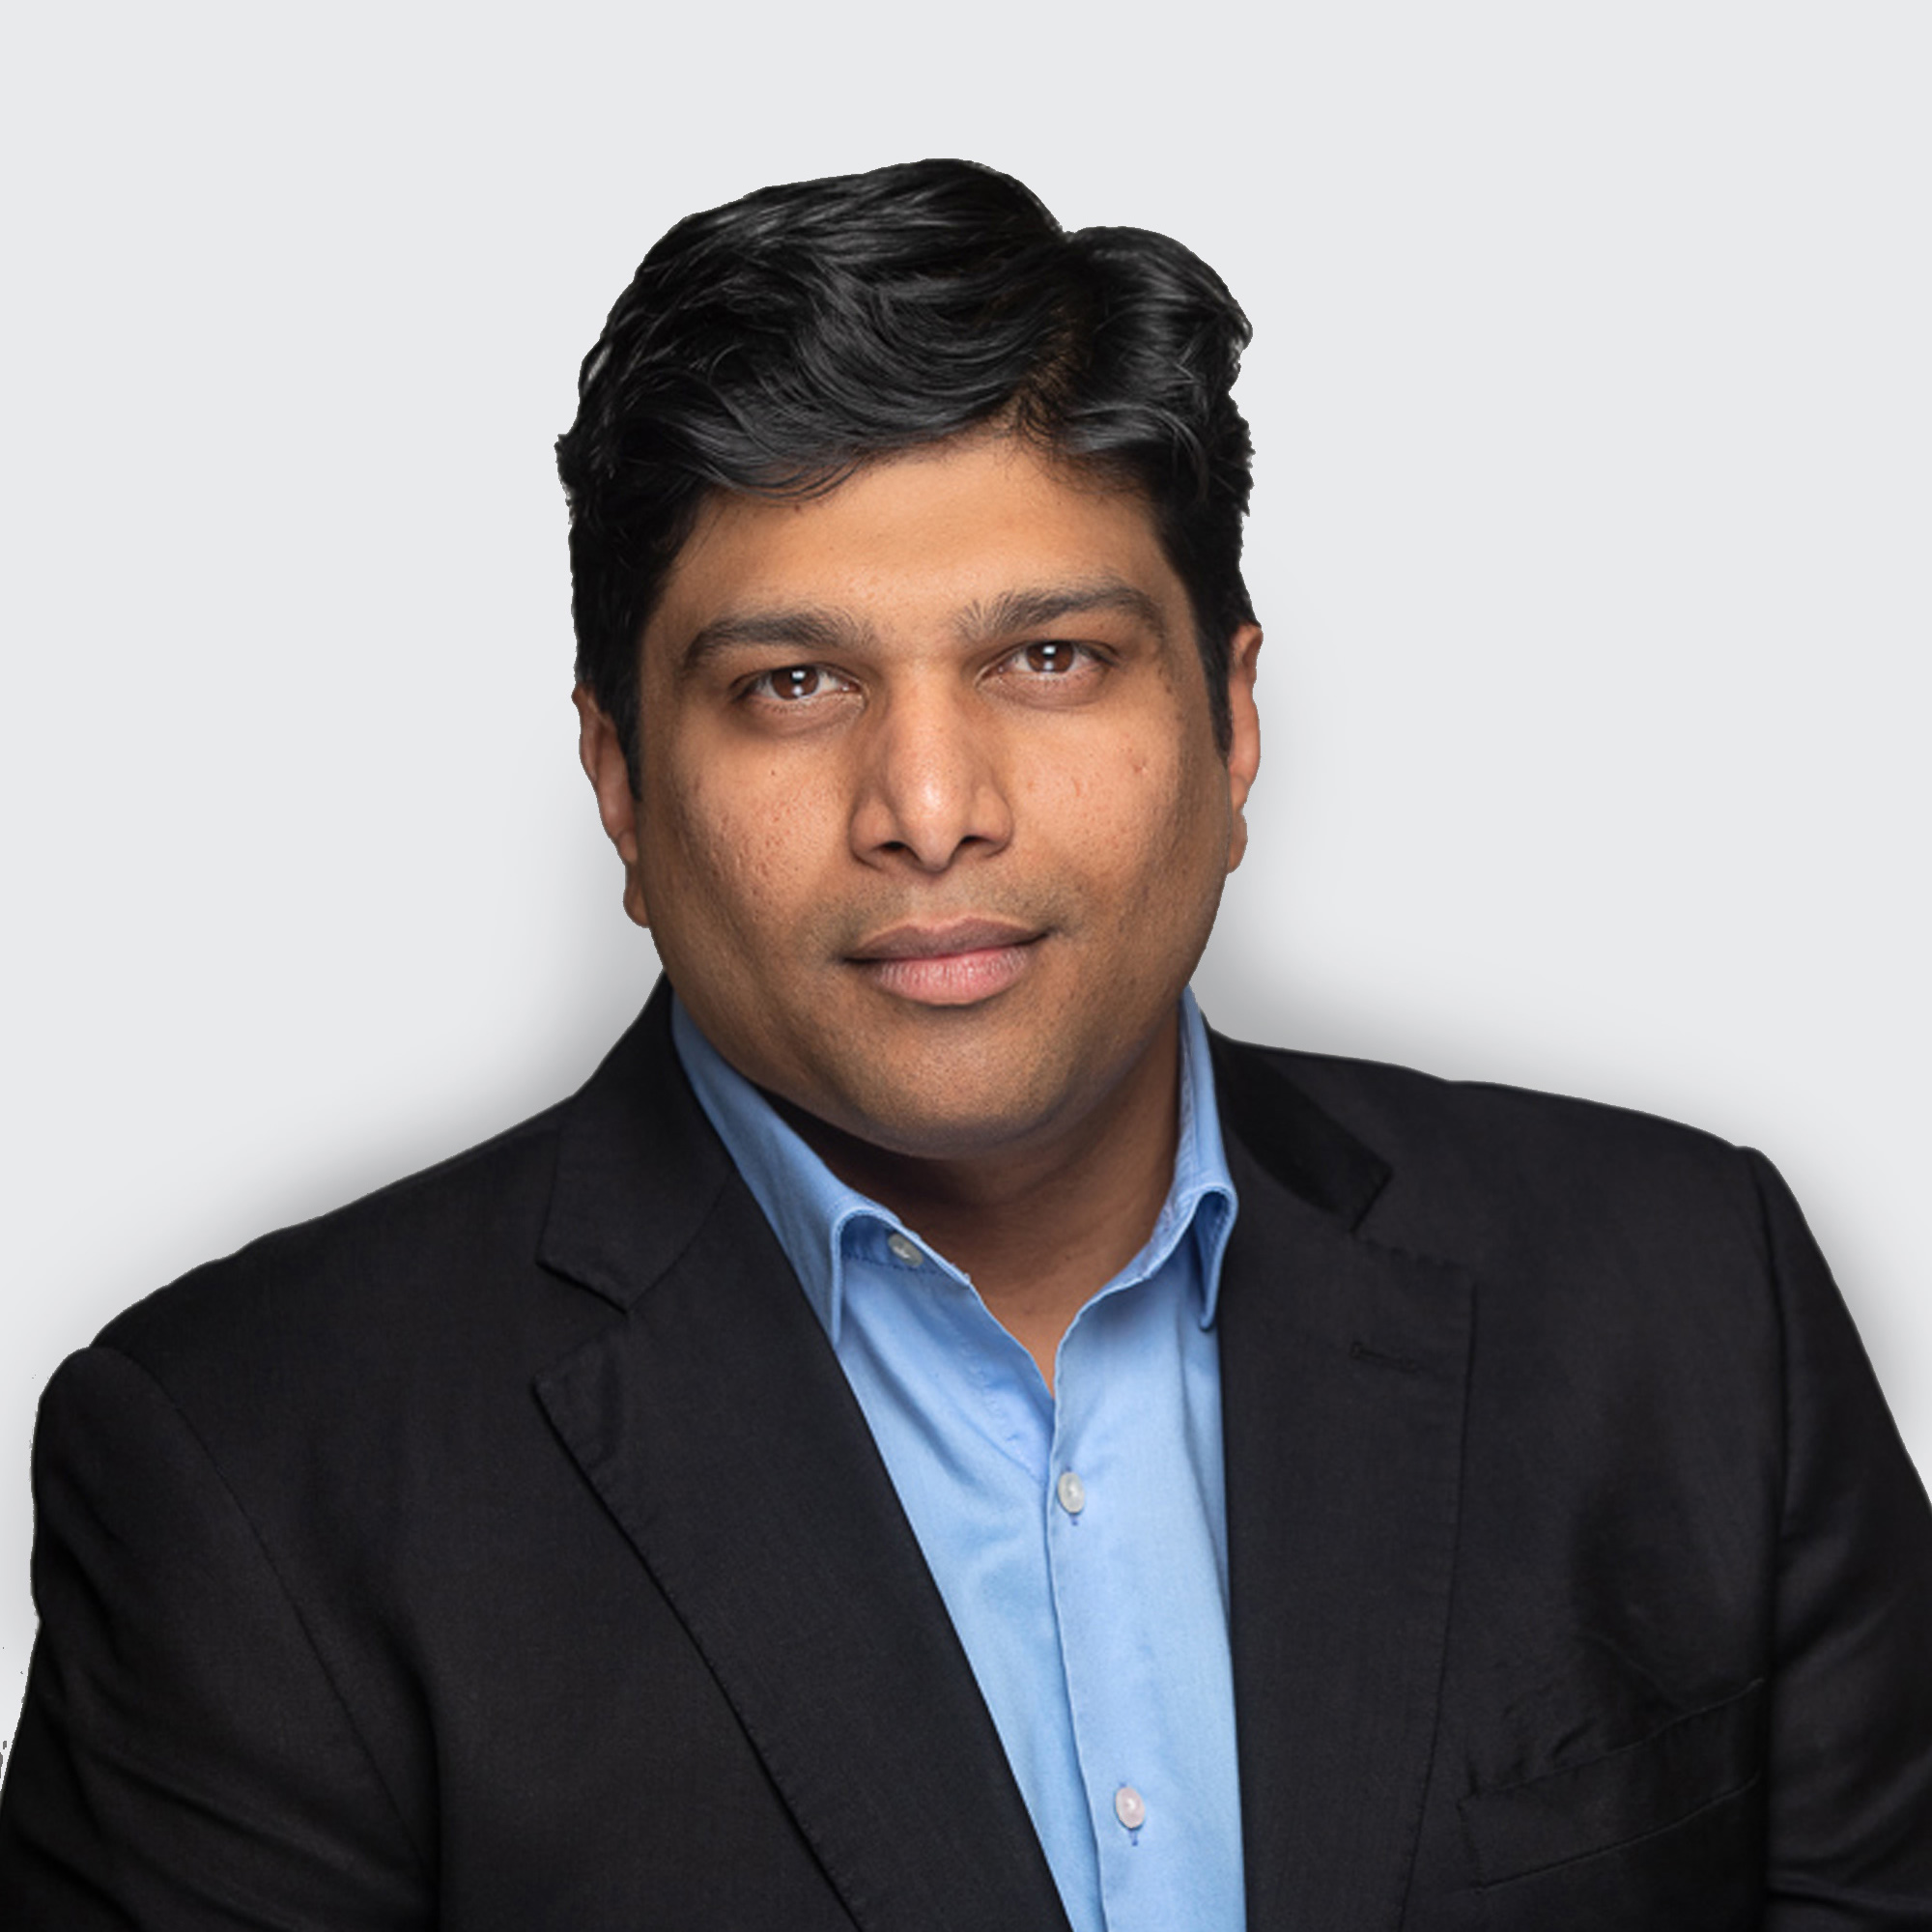 Anjan Kundavaram. Chief Product Officer